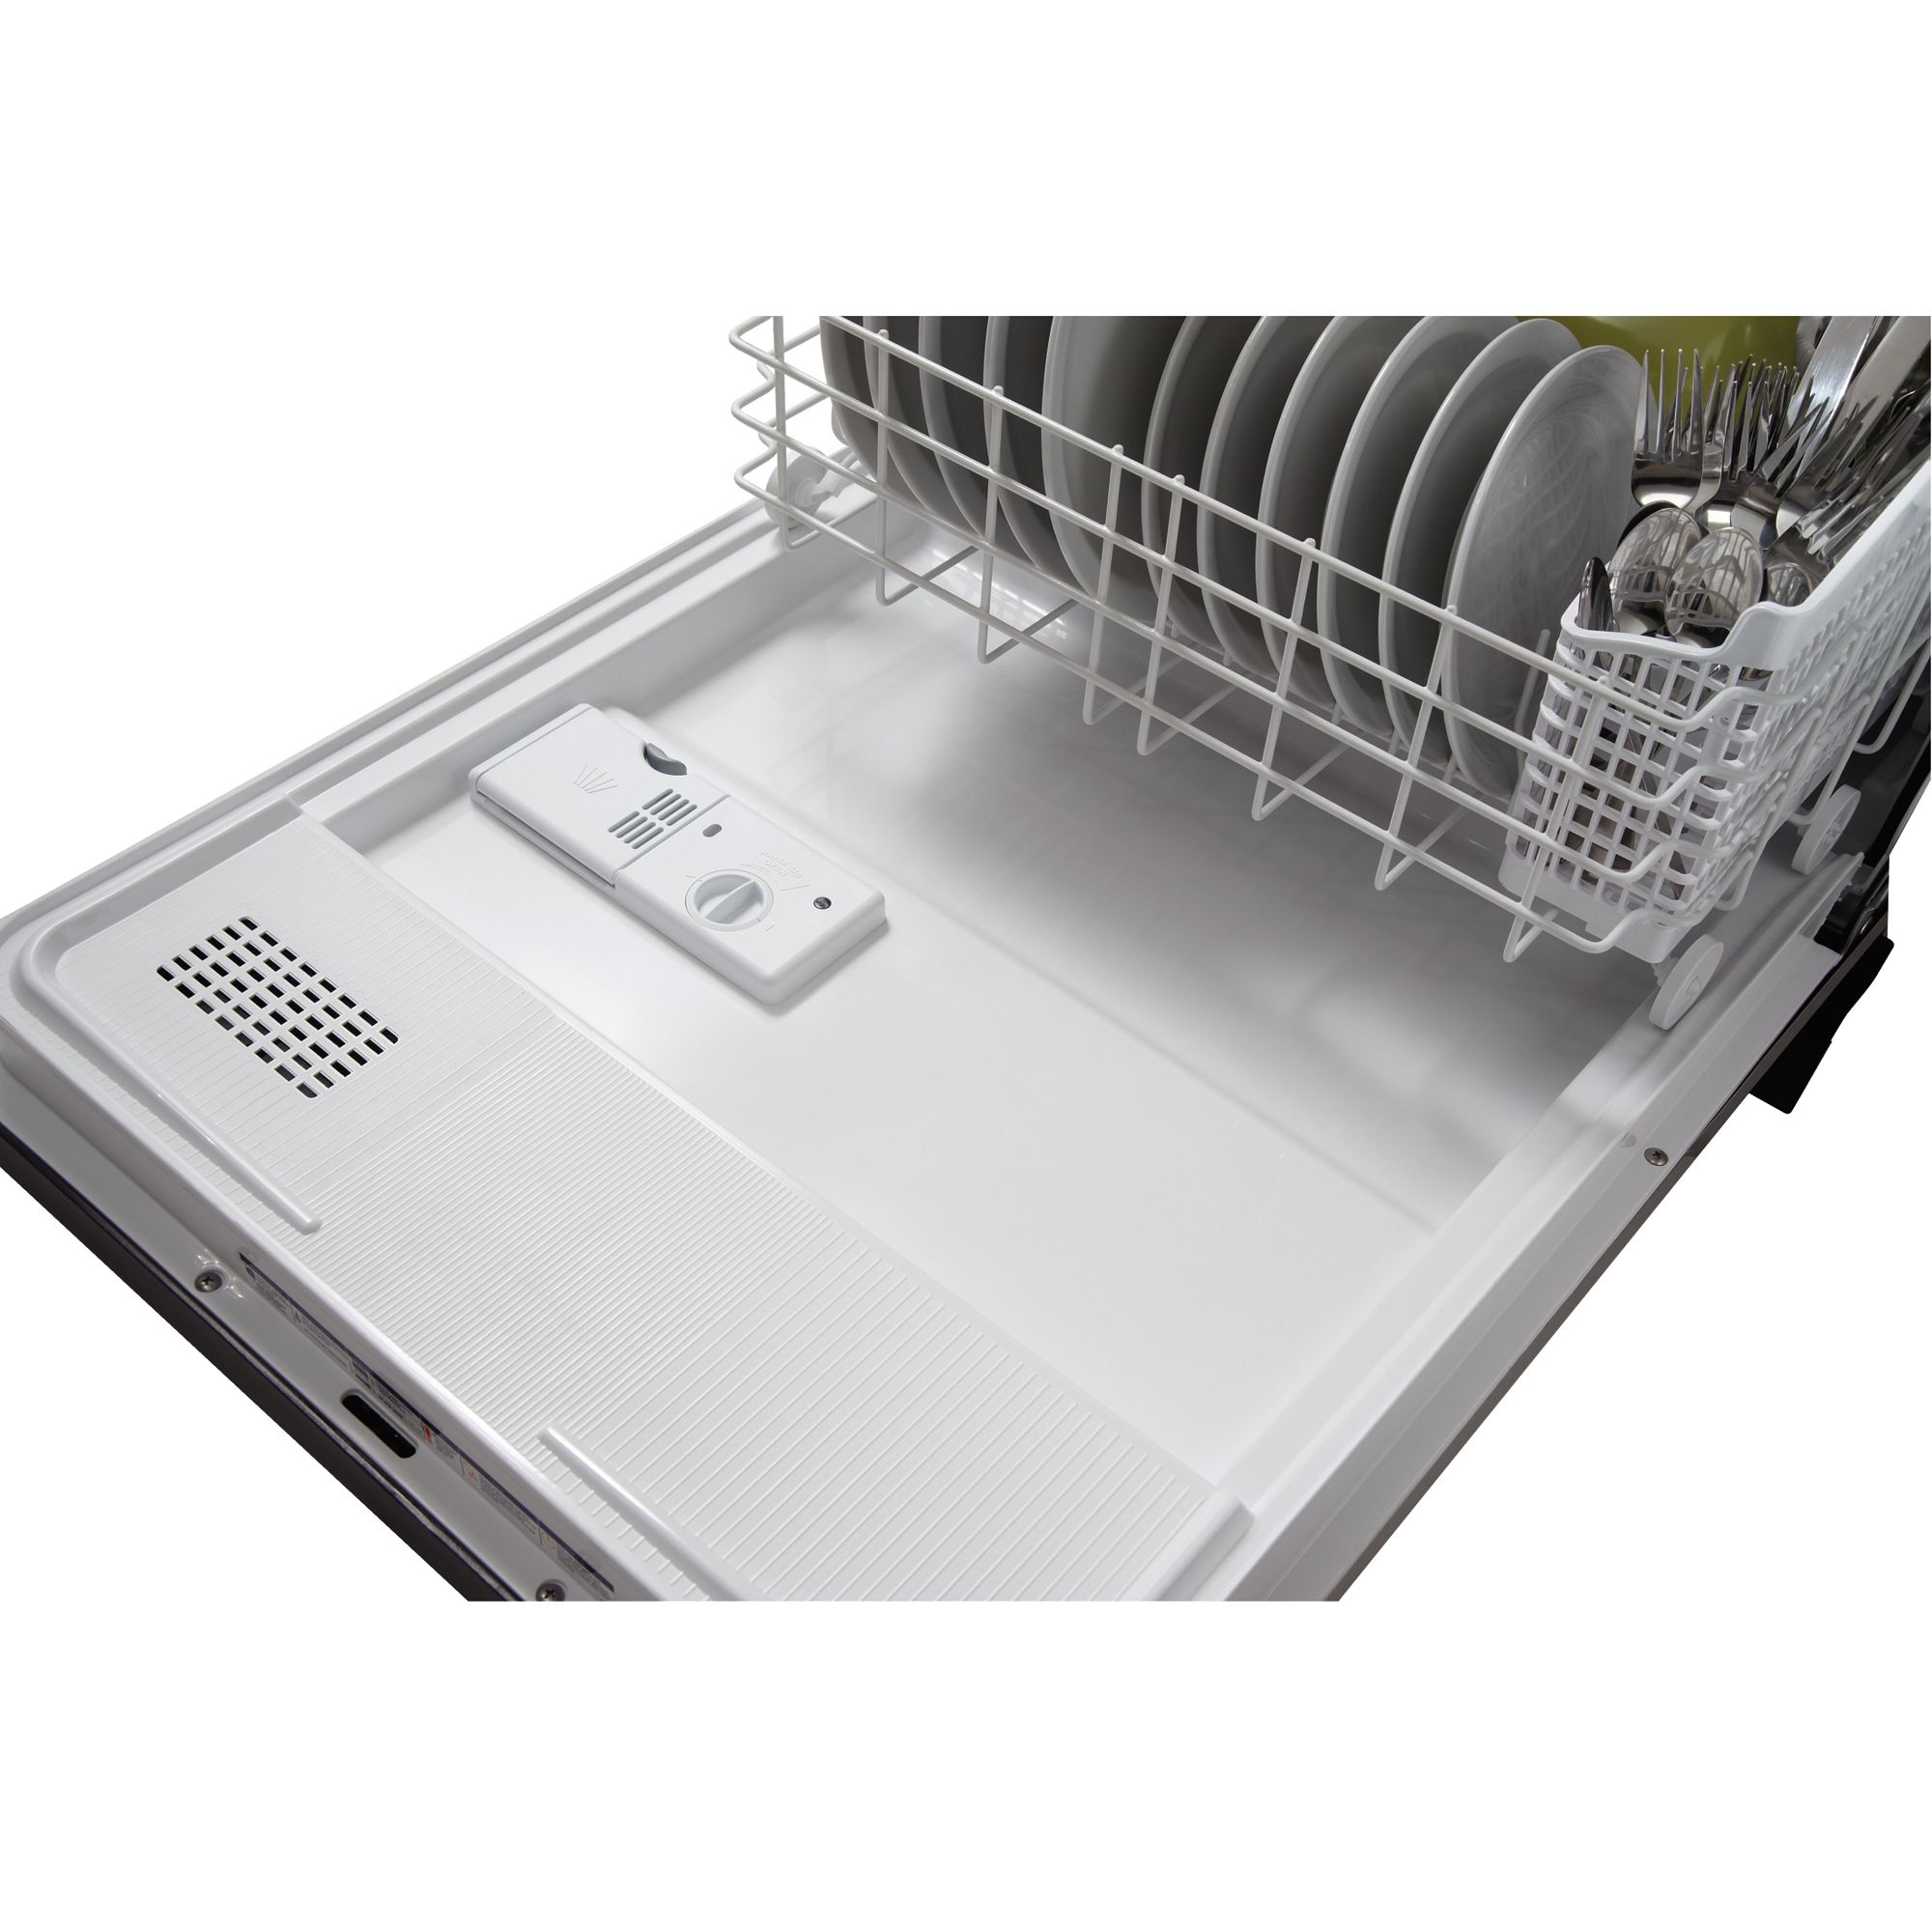 Frigidaire 24 in. Built-In Dishwasher